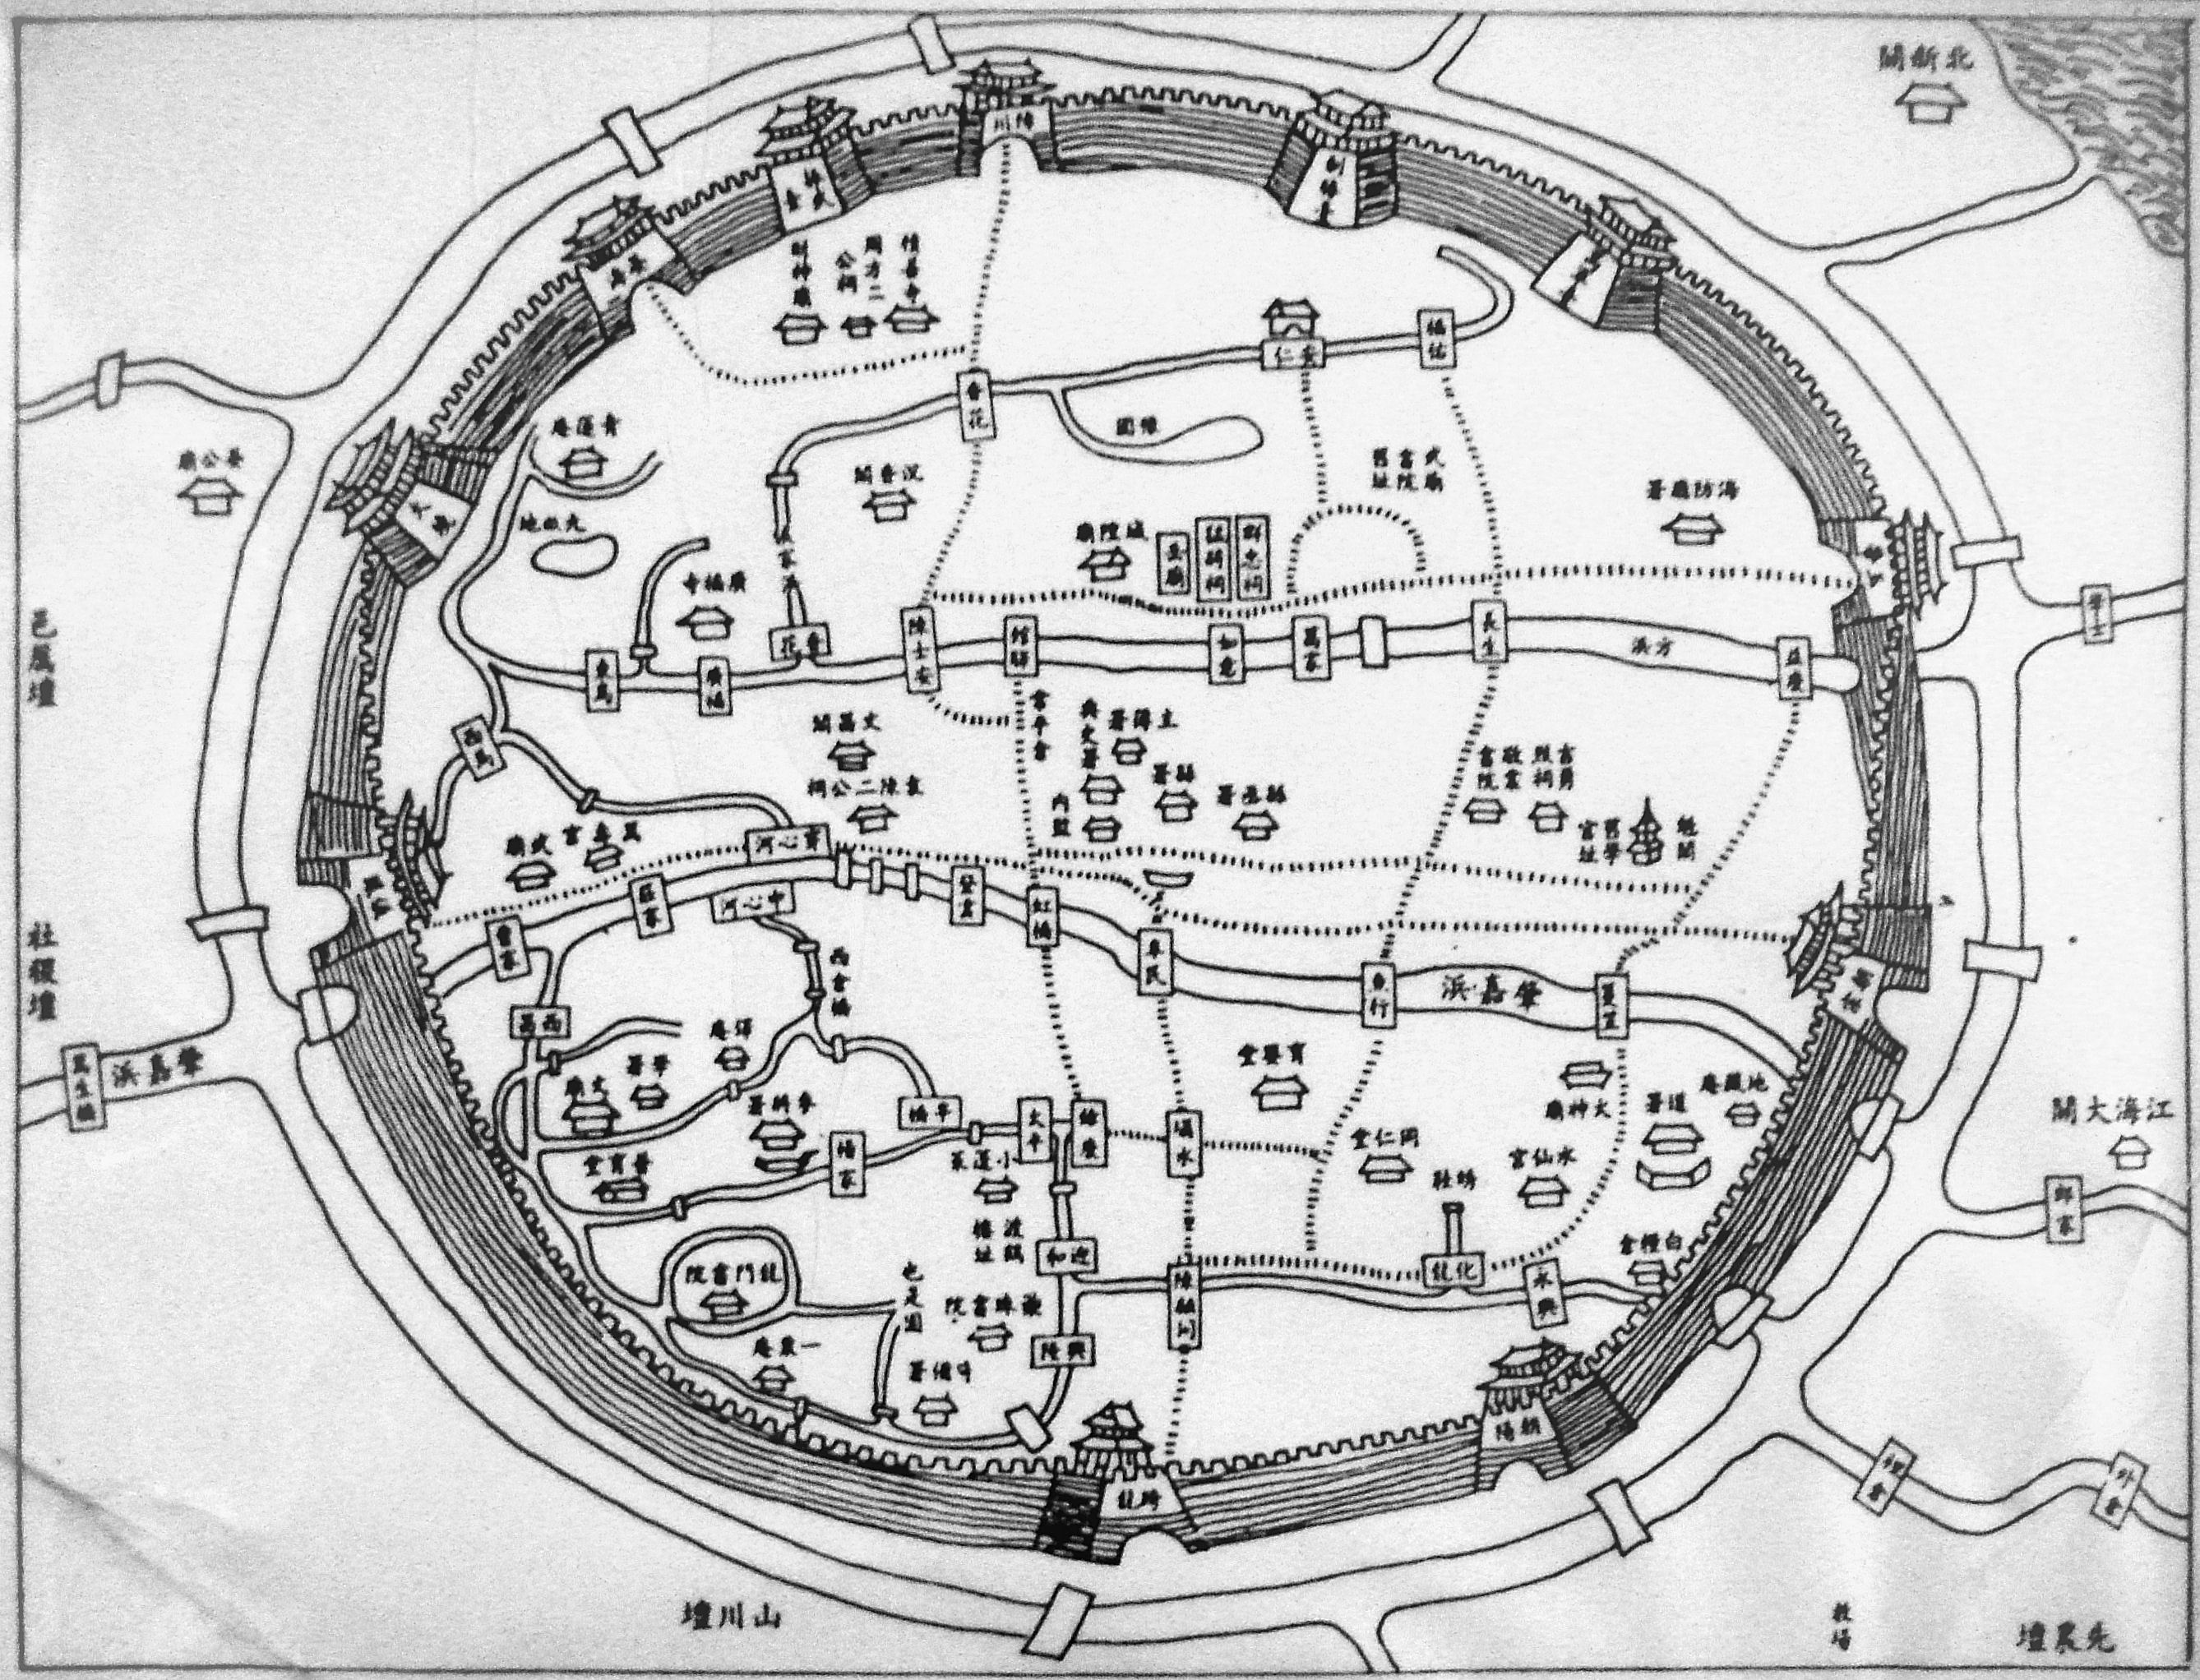 File:Map of the Old City of Shanghai.jpg - Wikimedia Commons